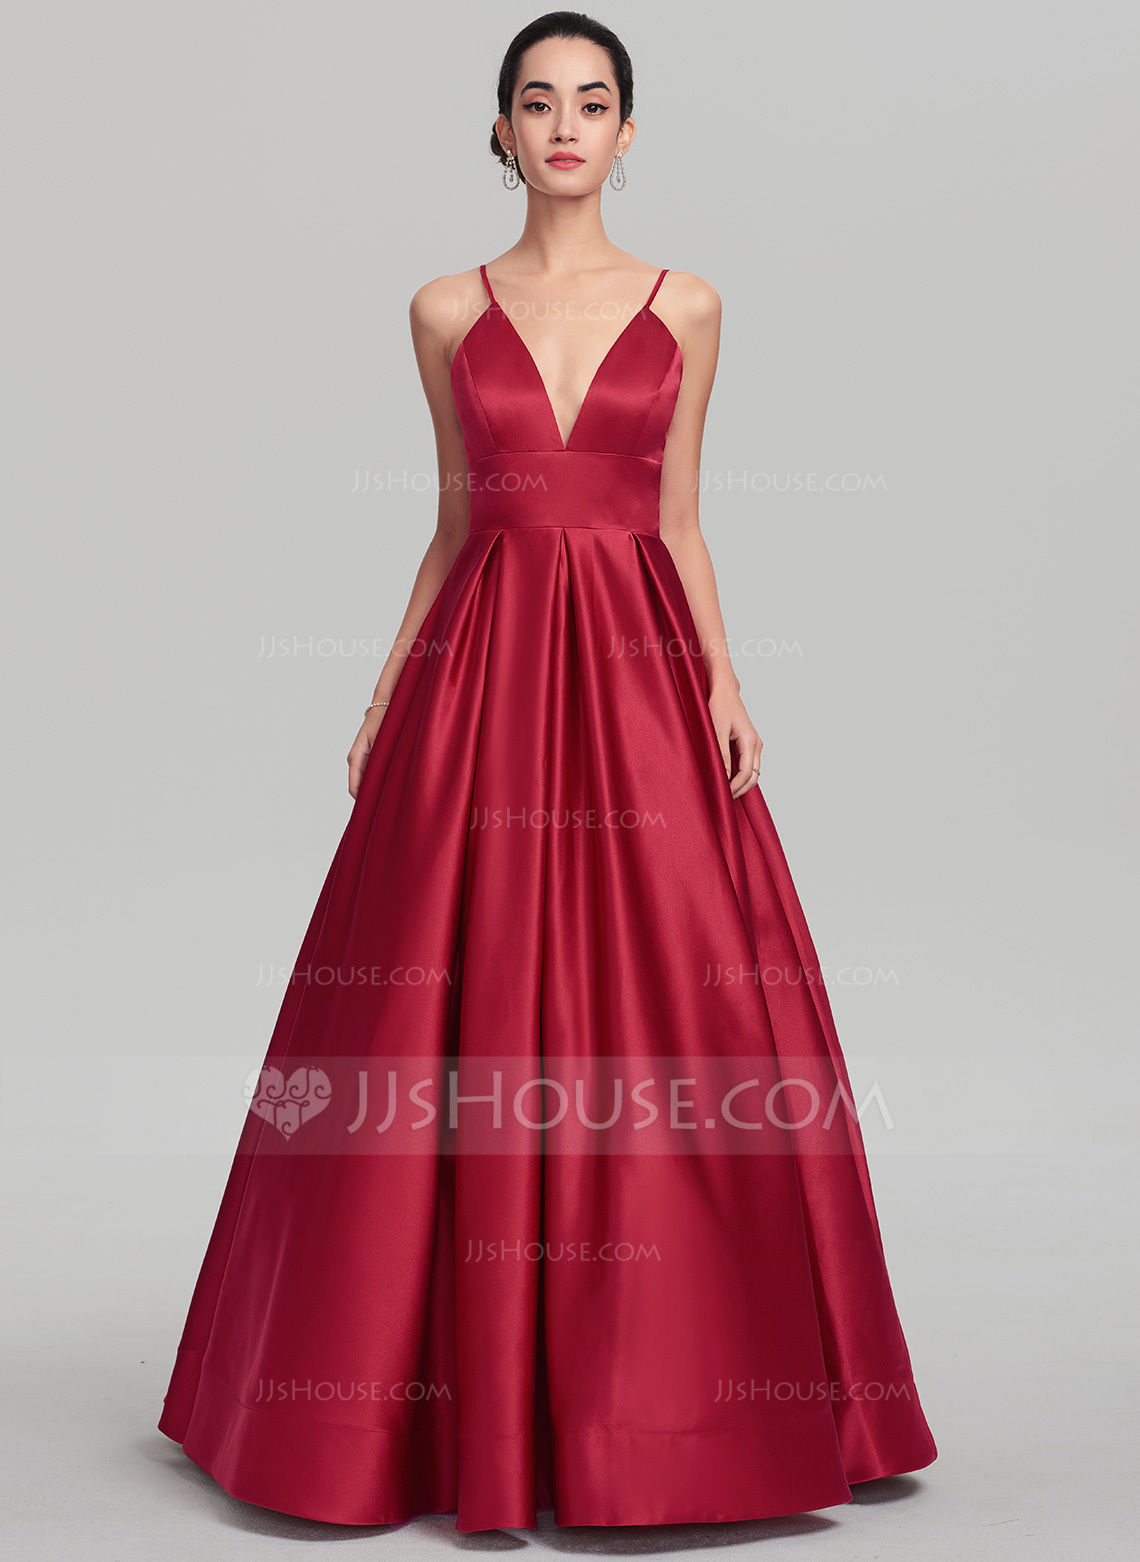 ball gown evening dresses photo - 1